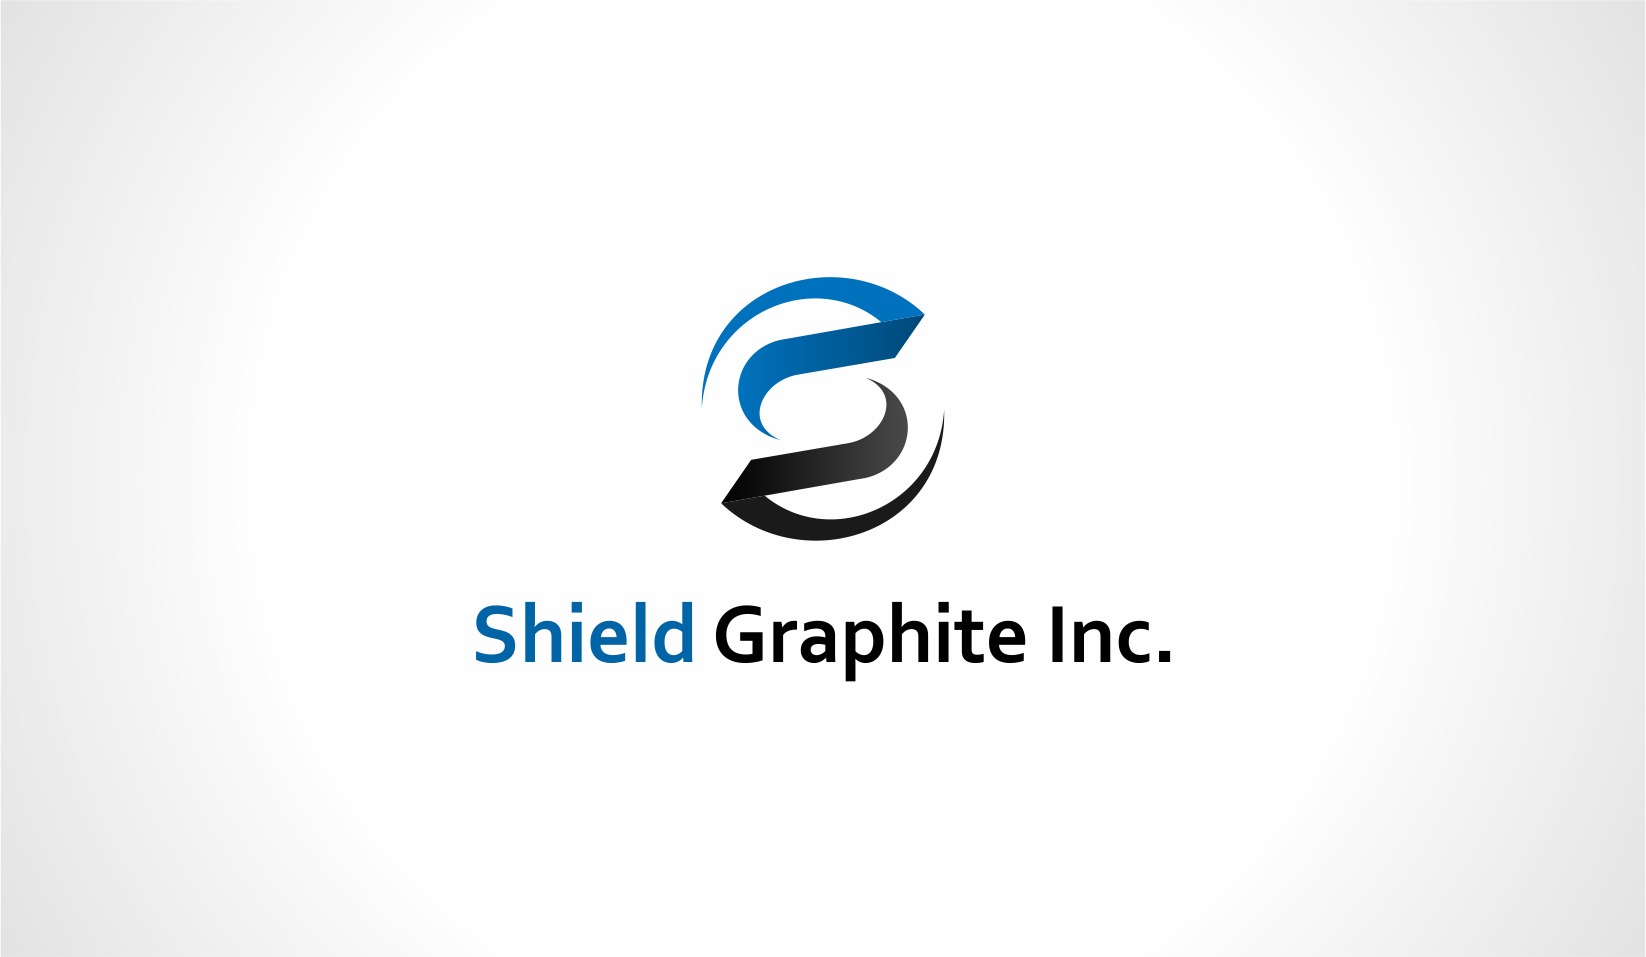 Logo Design by Muhammad Aslam - Entry No. 12 in the Logo Design Contest Imaginative Logo Design for Shield Graphite Inc..